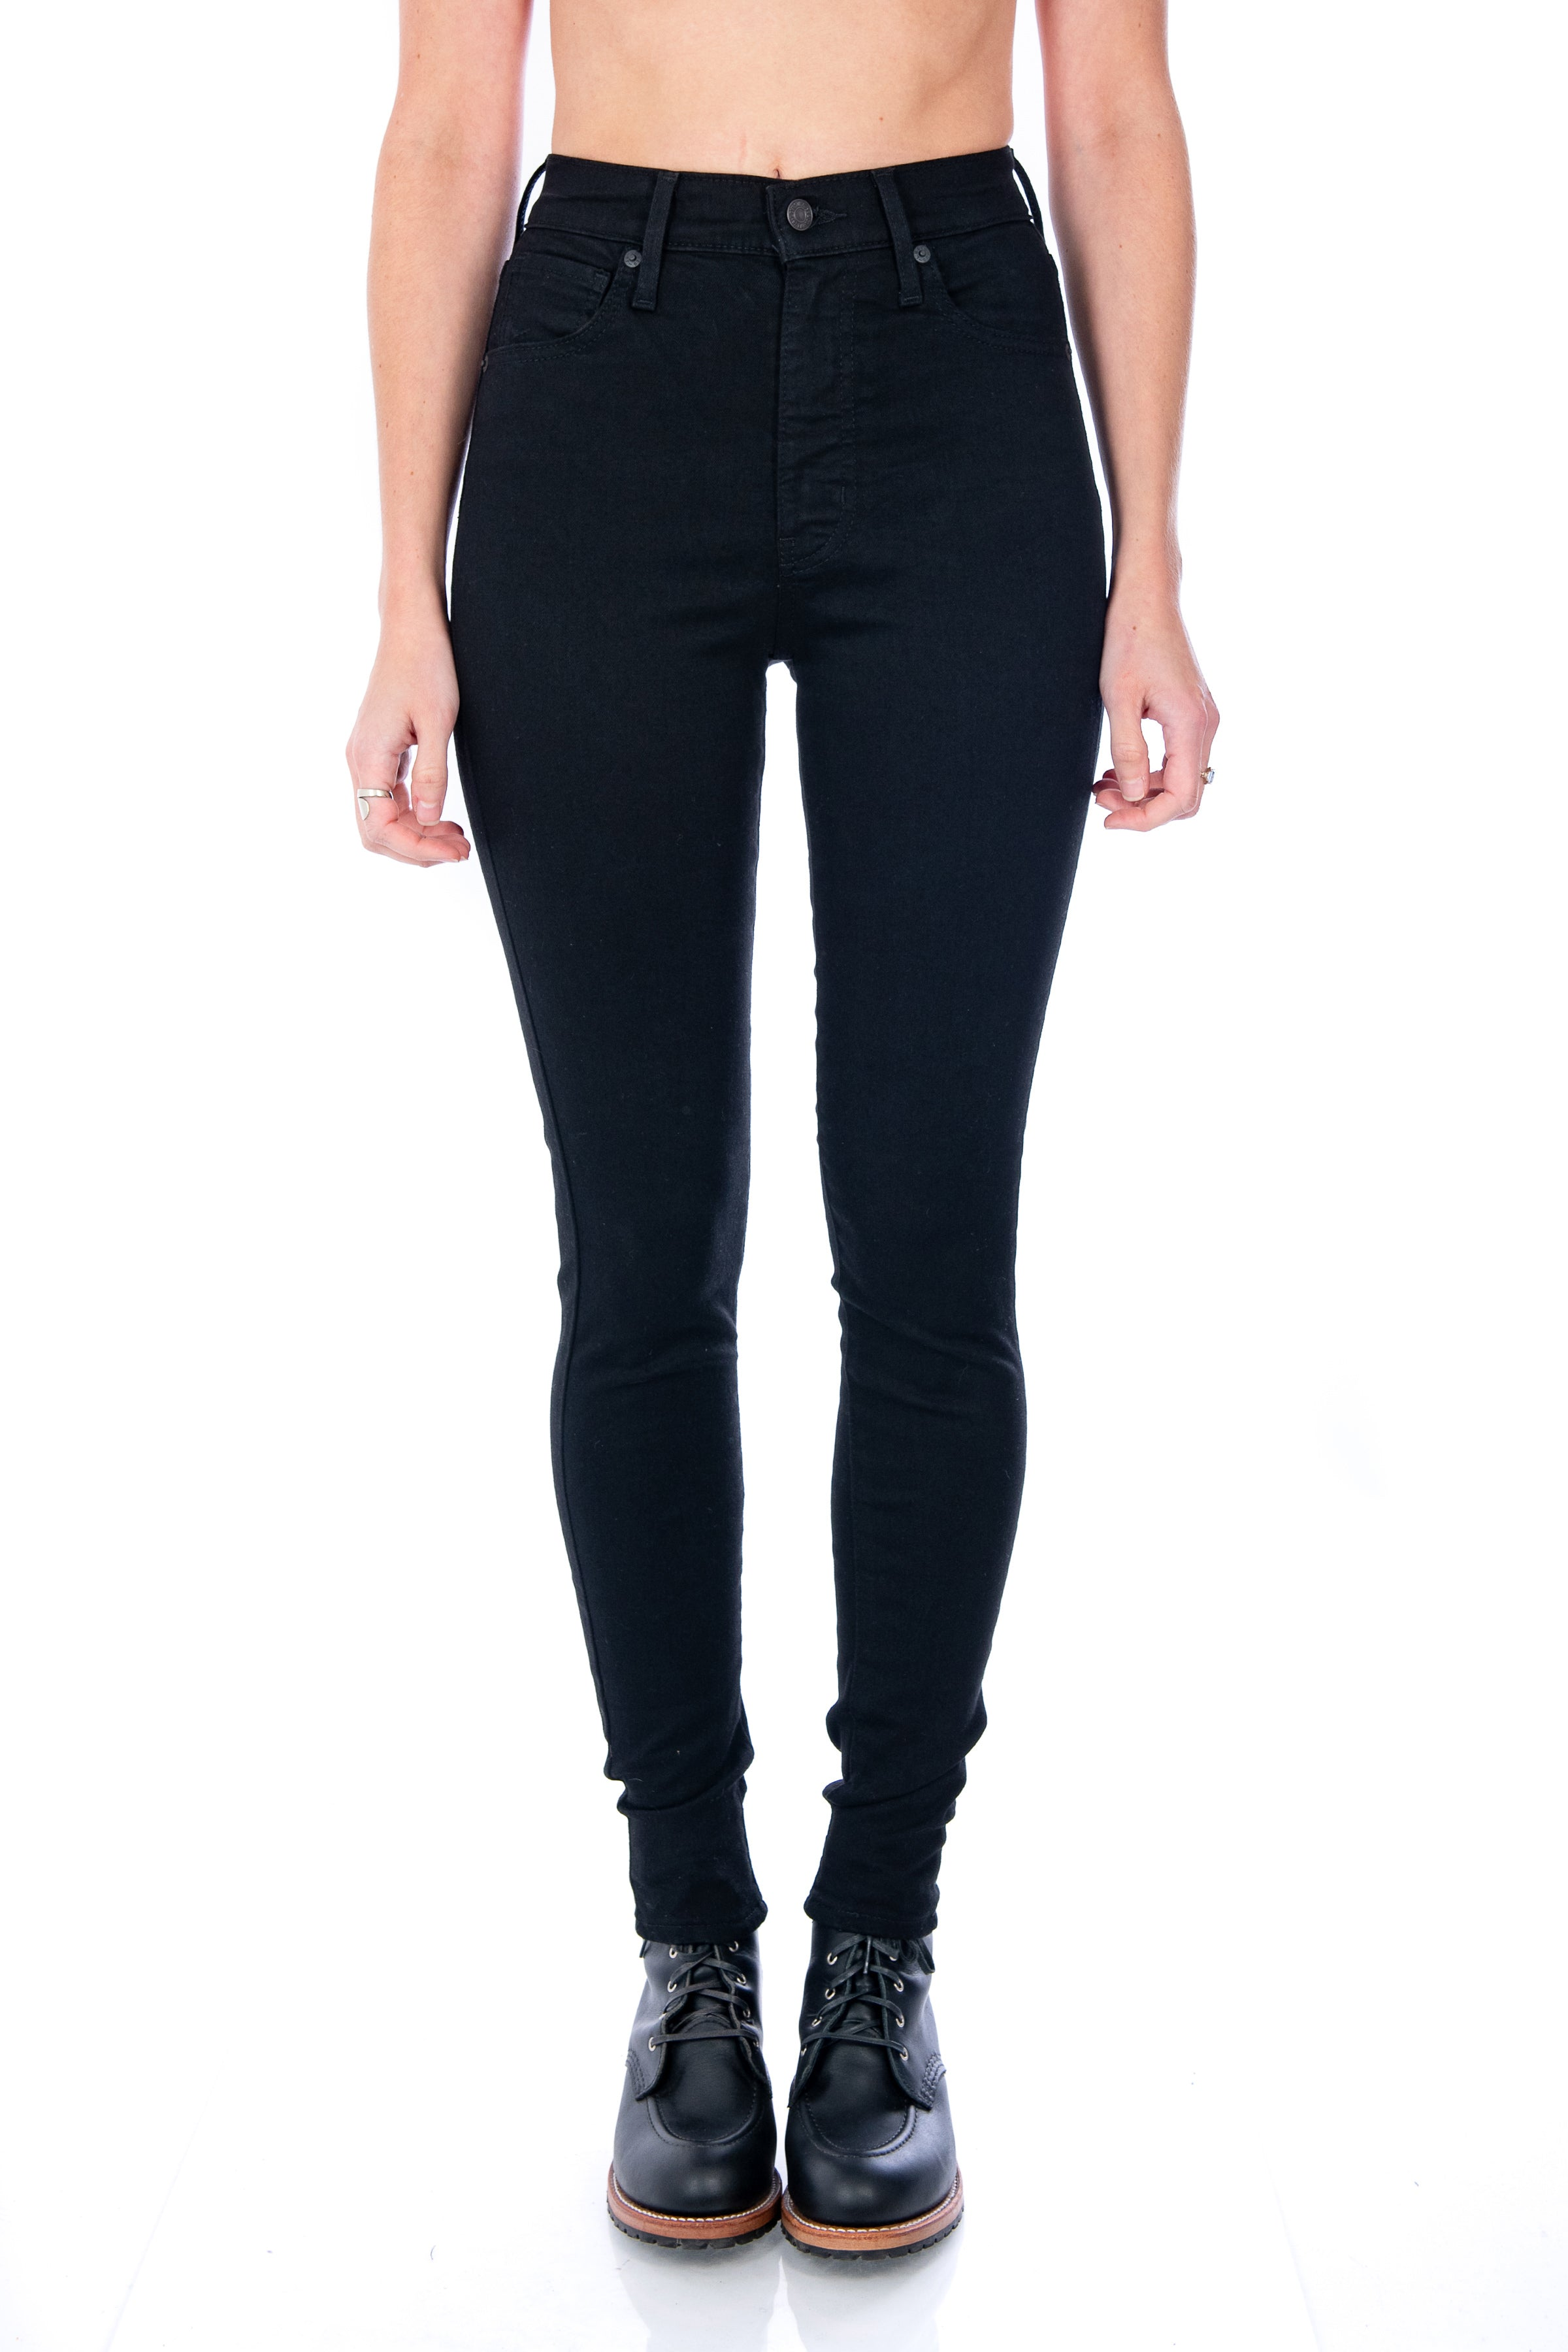 cbc815b9 Women's Levi's Mile High Super Skinny in Black Galaxy